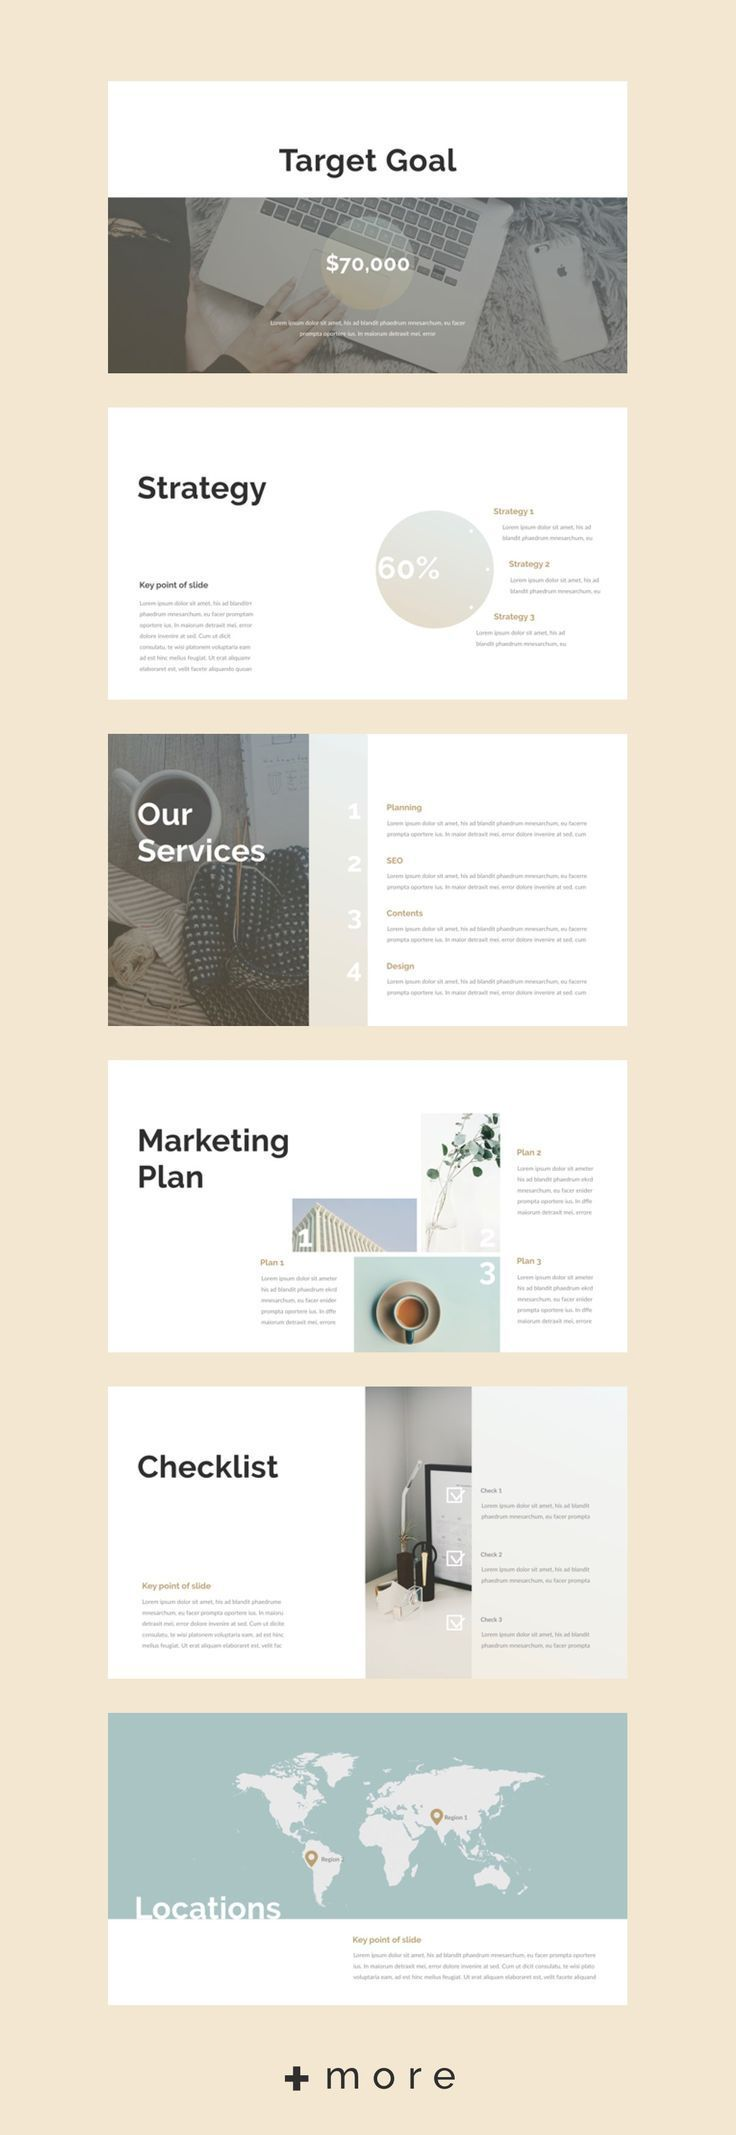 planner presentation design template business planning keynote